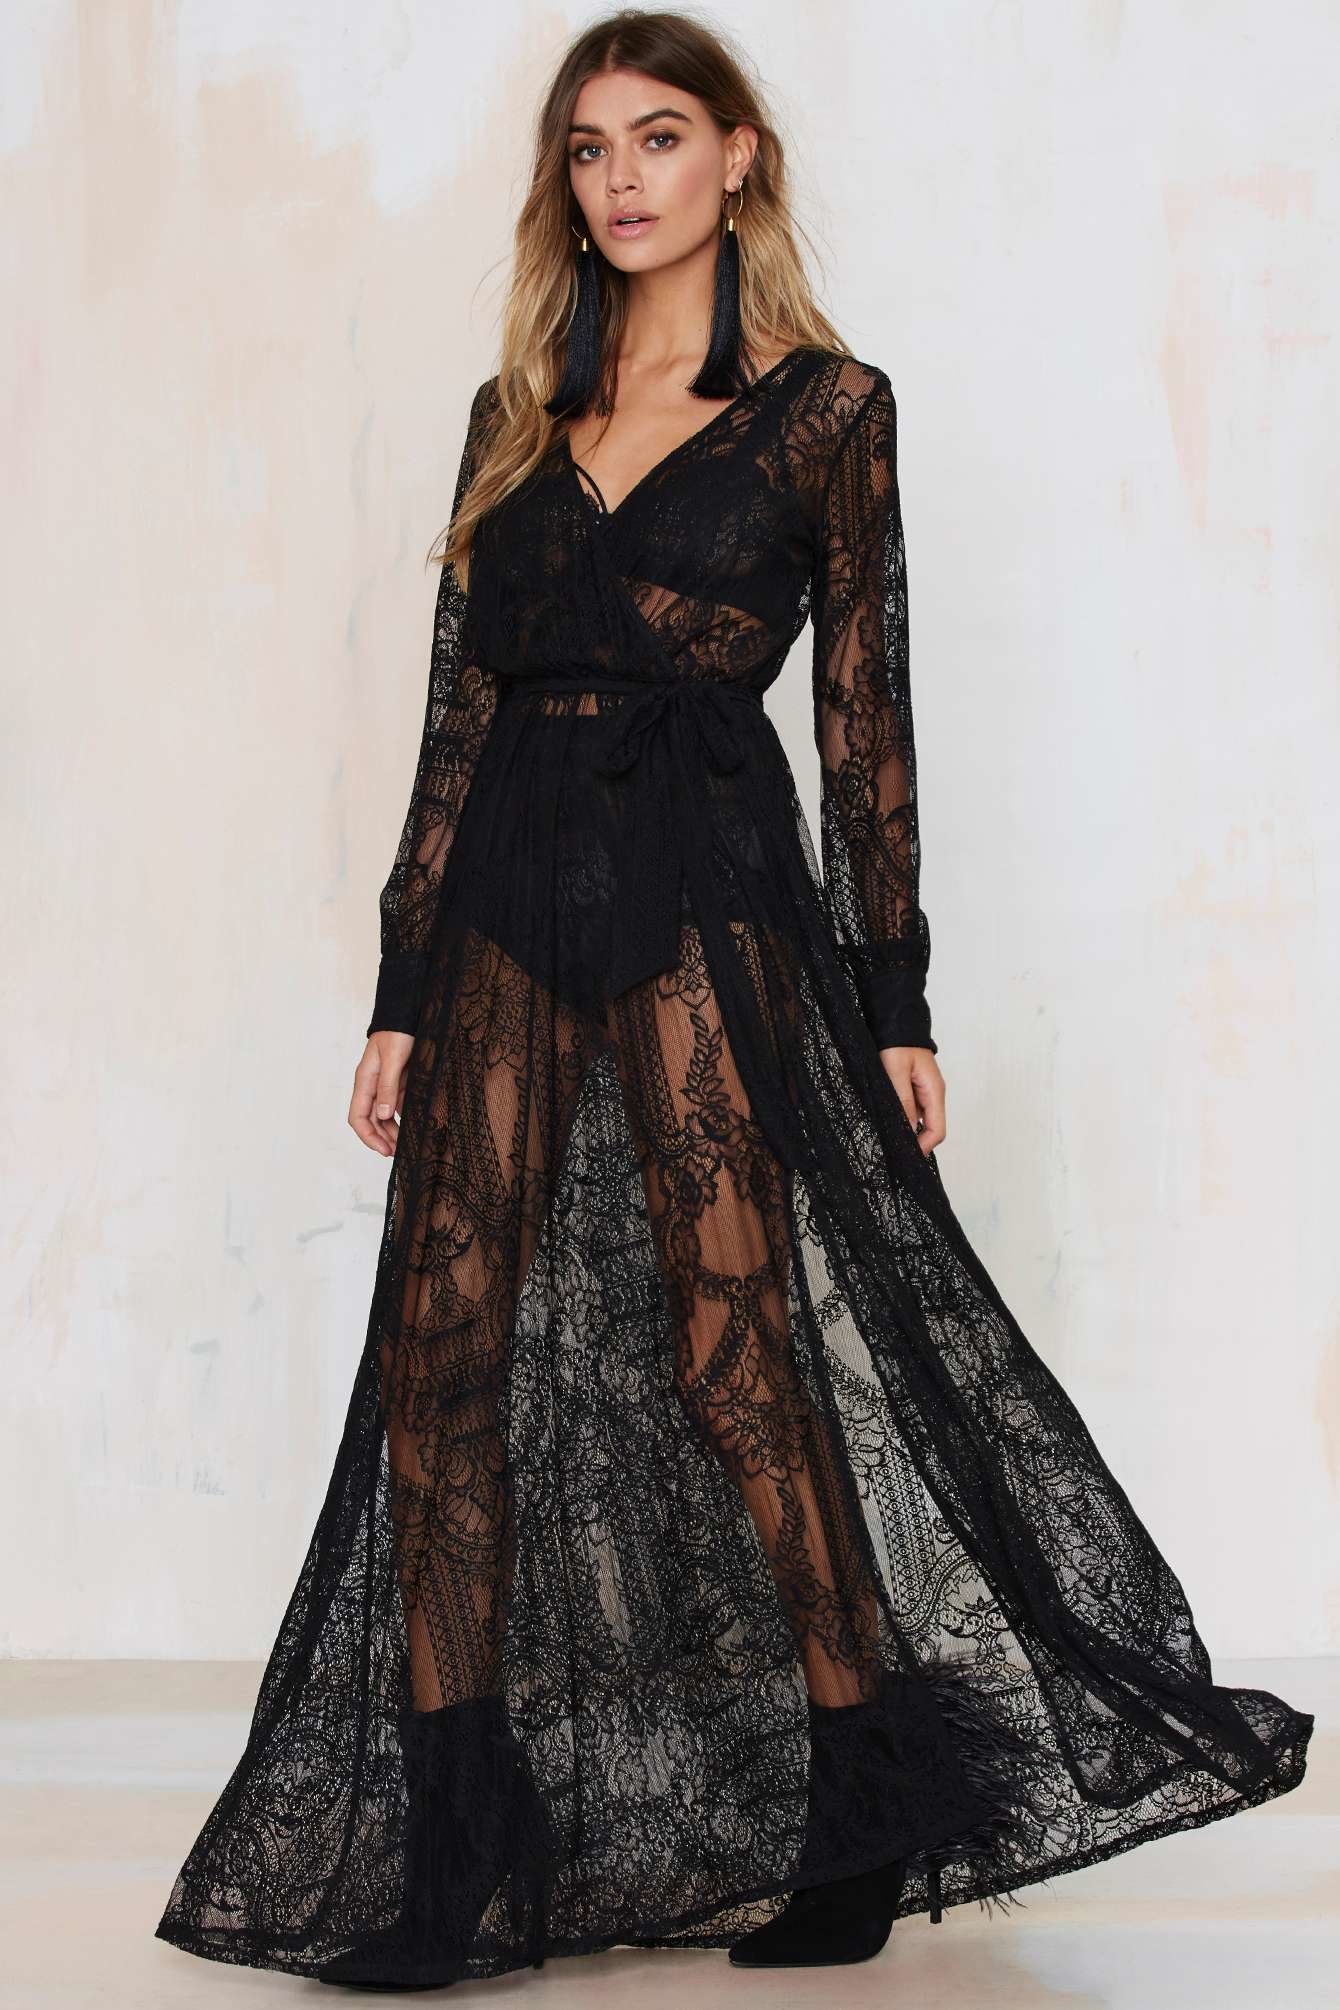 Nasty gal One And Only Lace Maxi Dress - Black in Black | Lyst